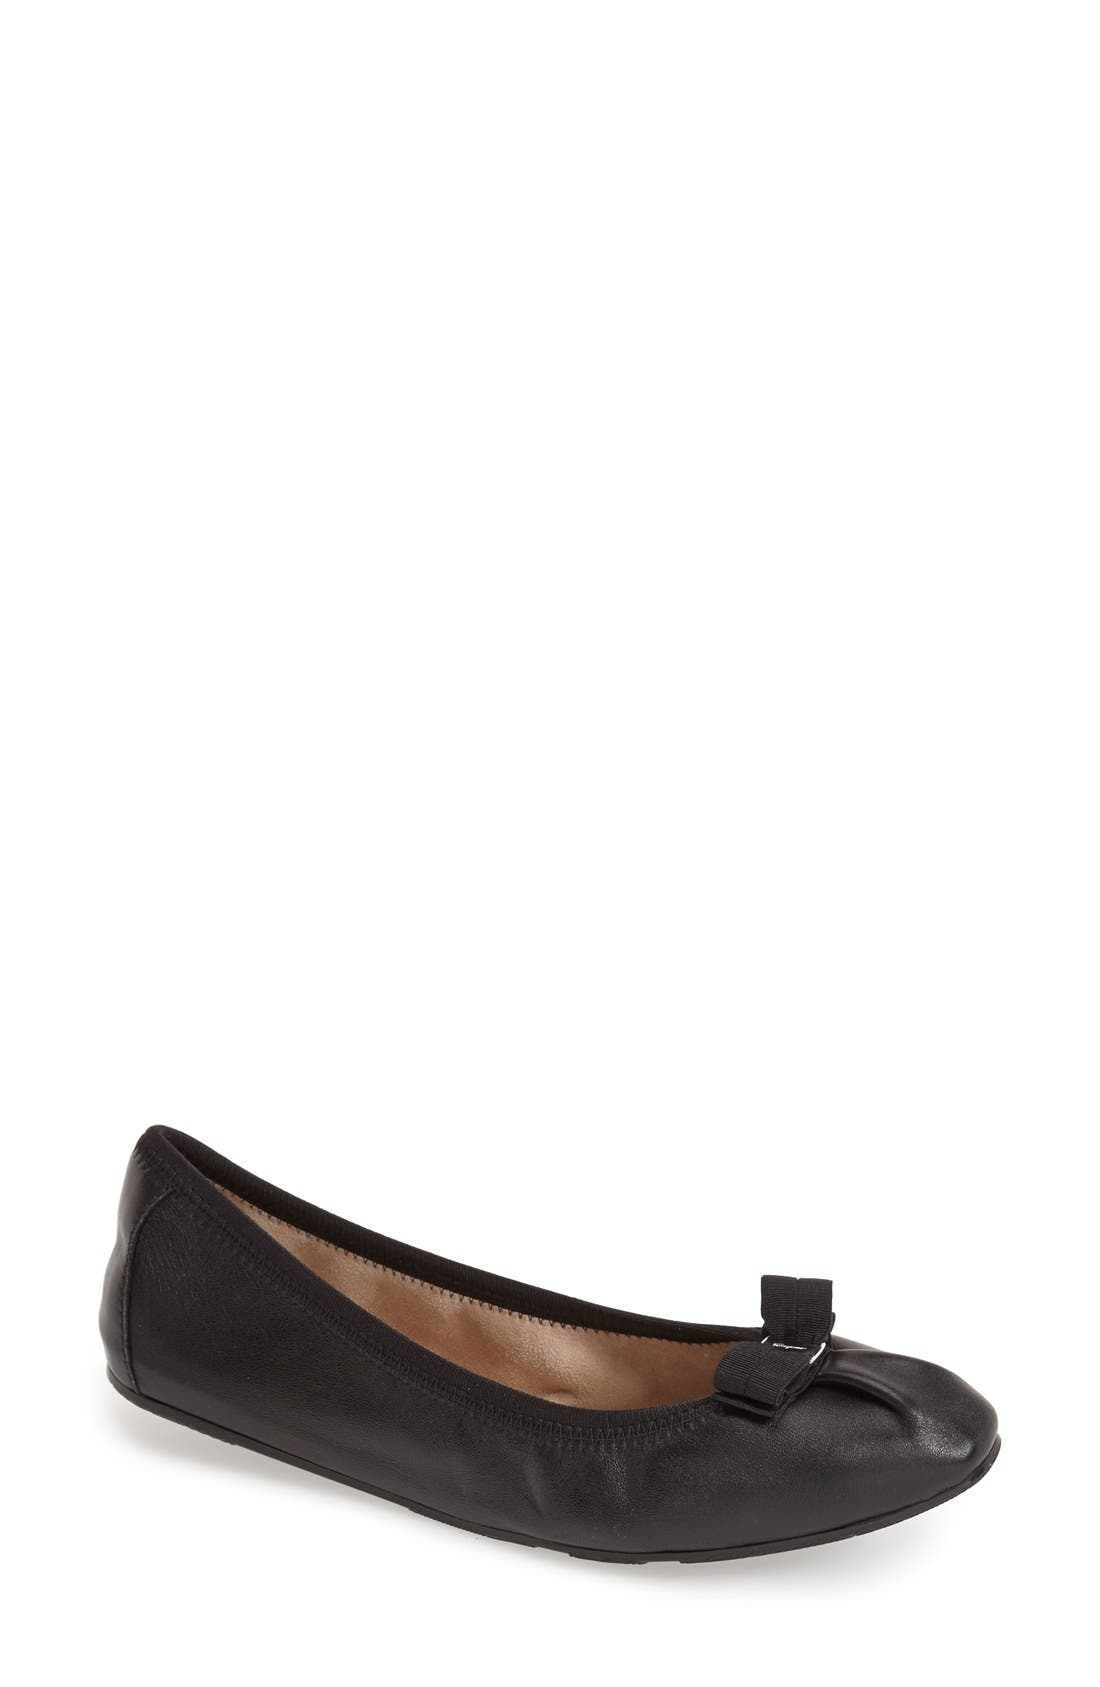 Main Image - Salvatore Ferragamo 'My Joy' Flat (Women)